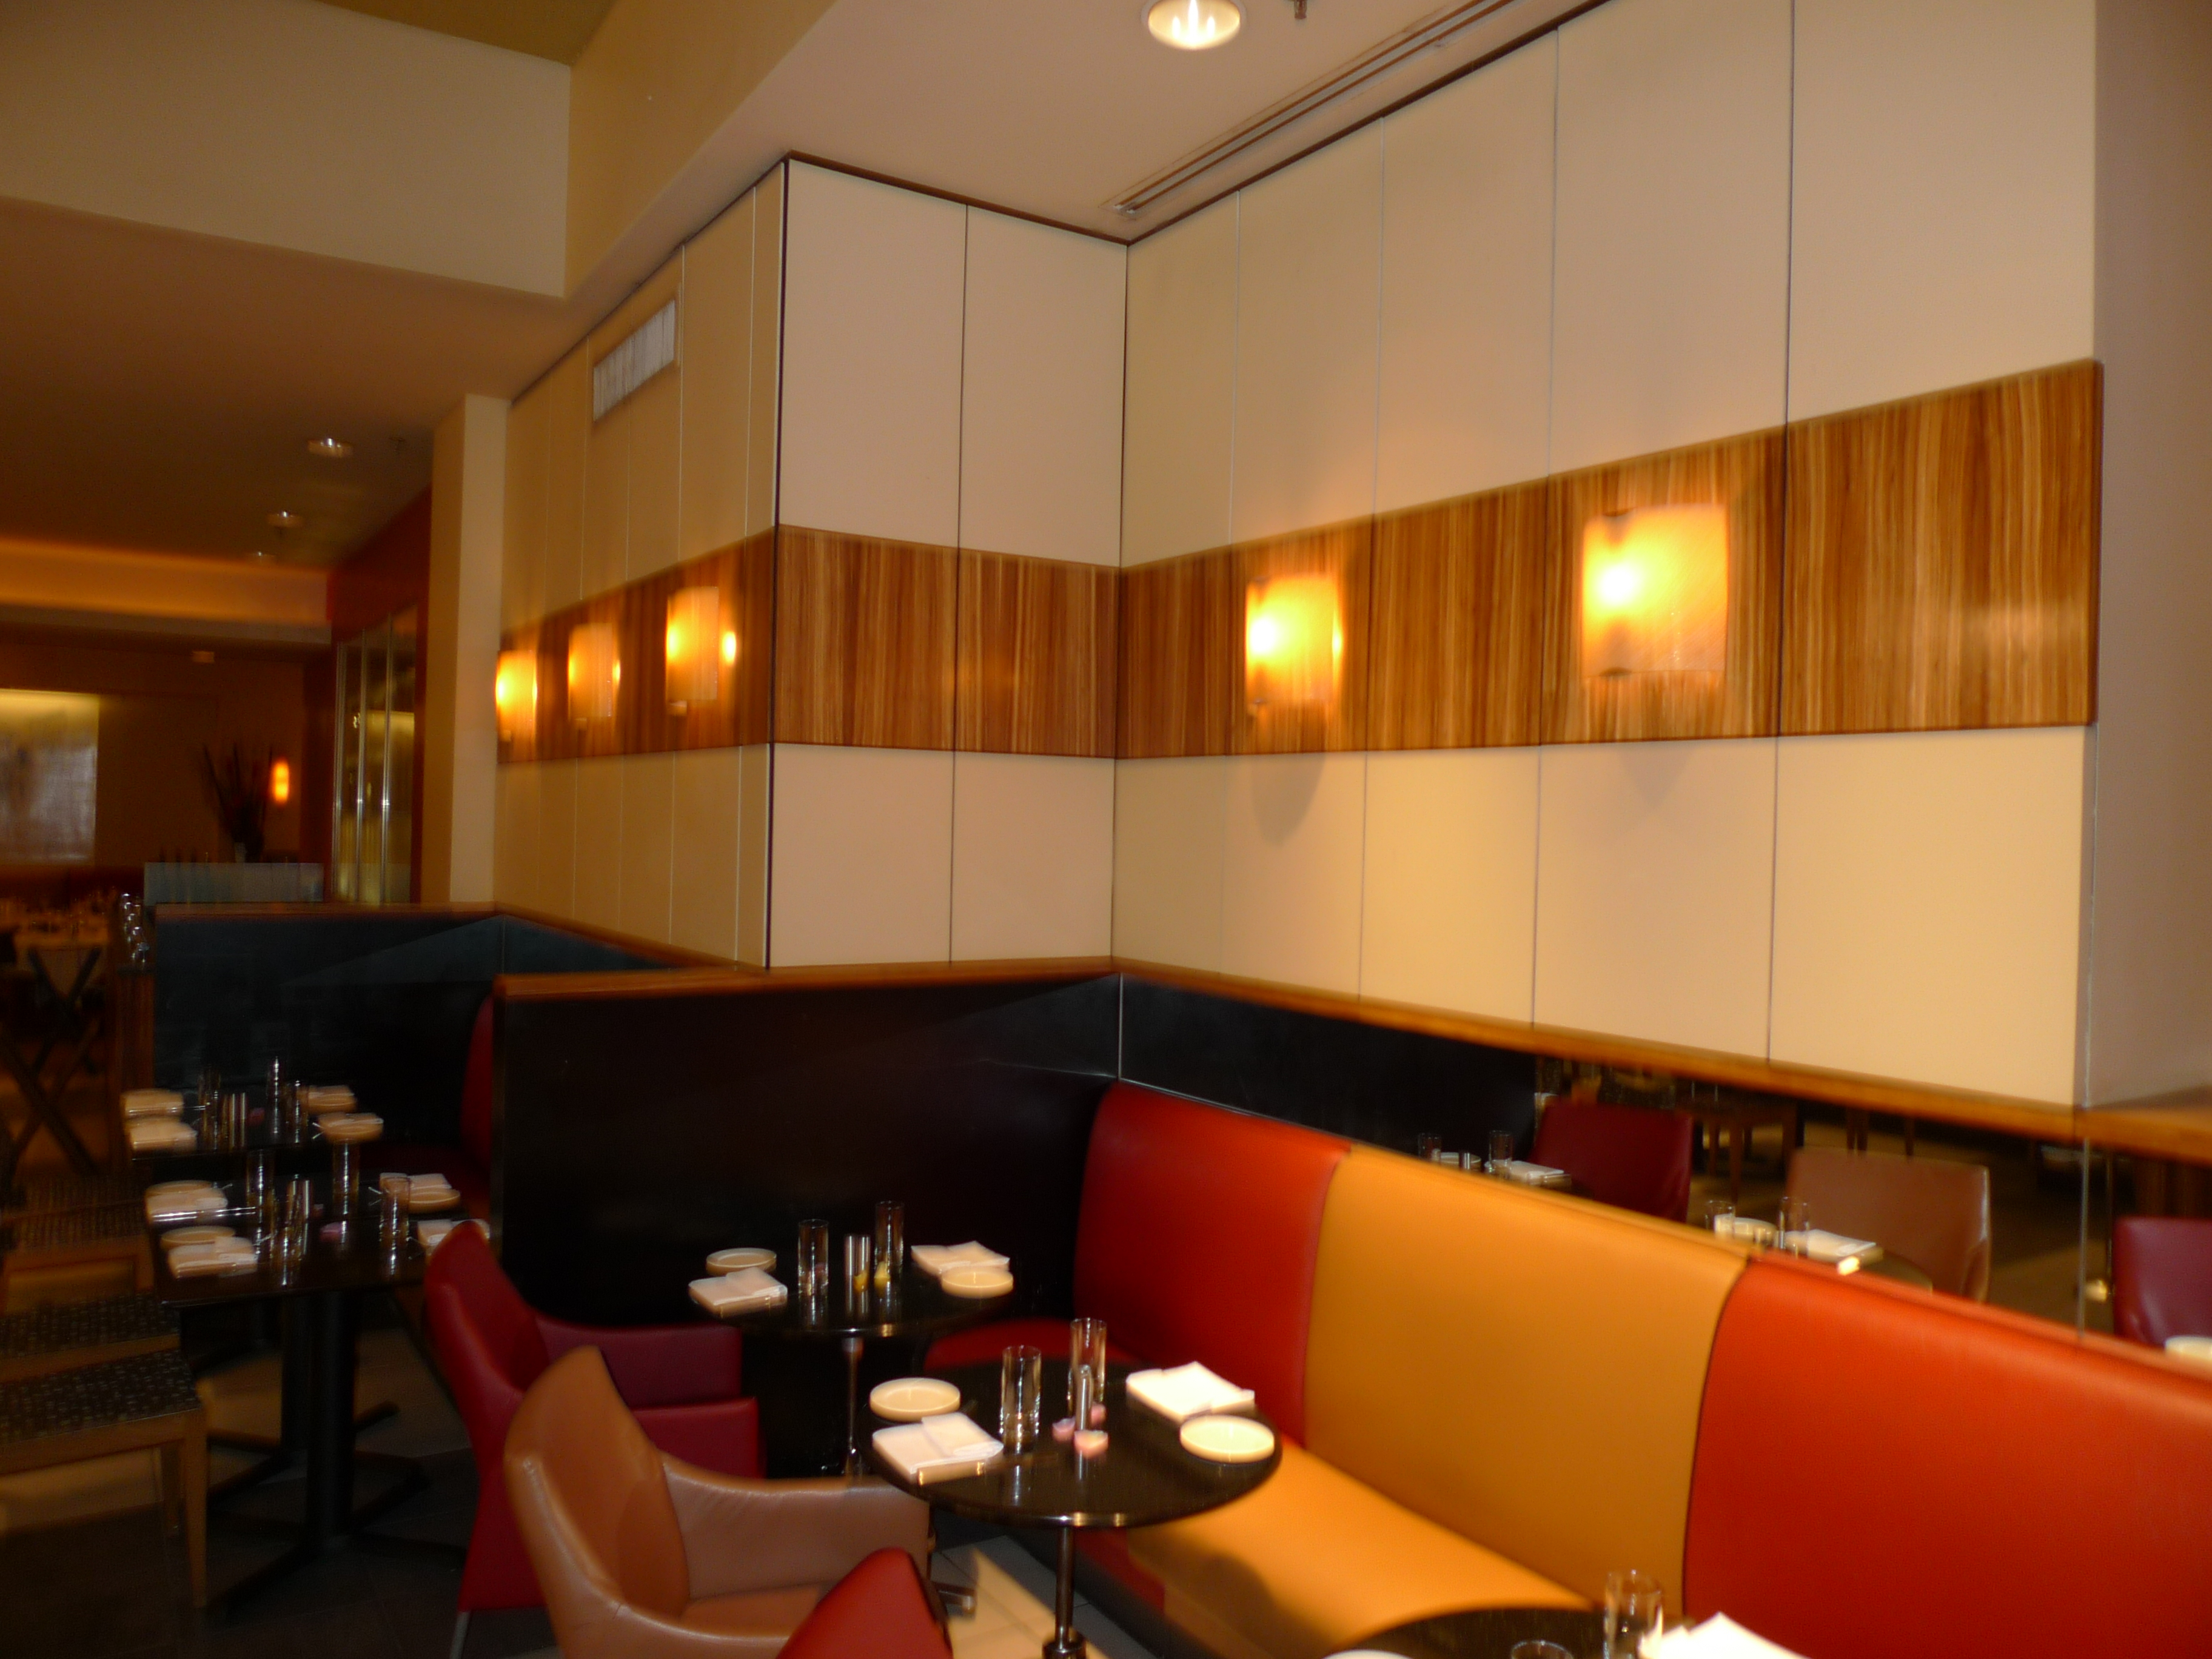 Completed Restaurant interior with Custom Seating and Wall Finishes, NYC